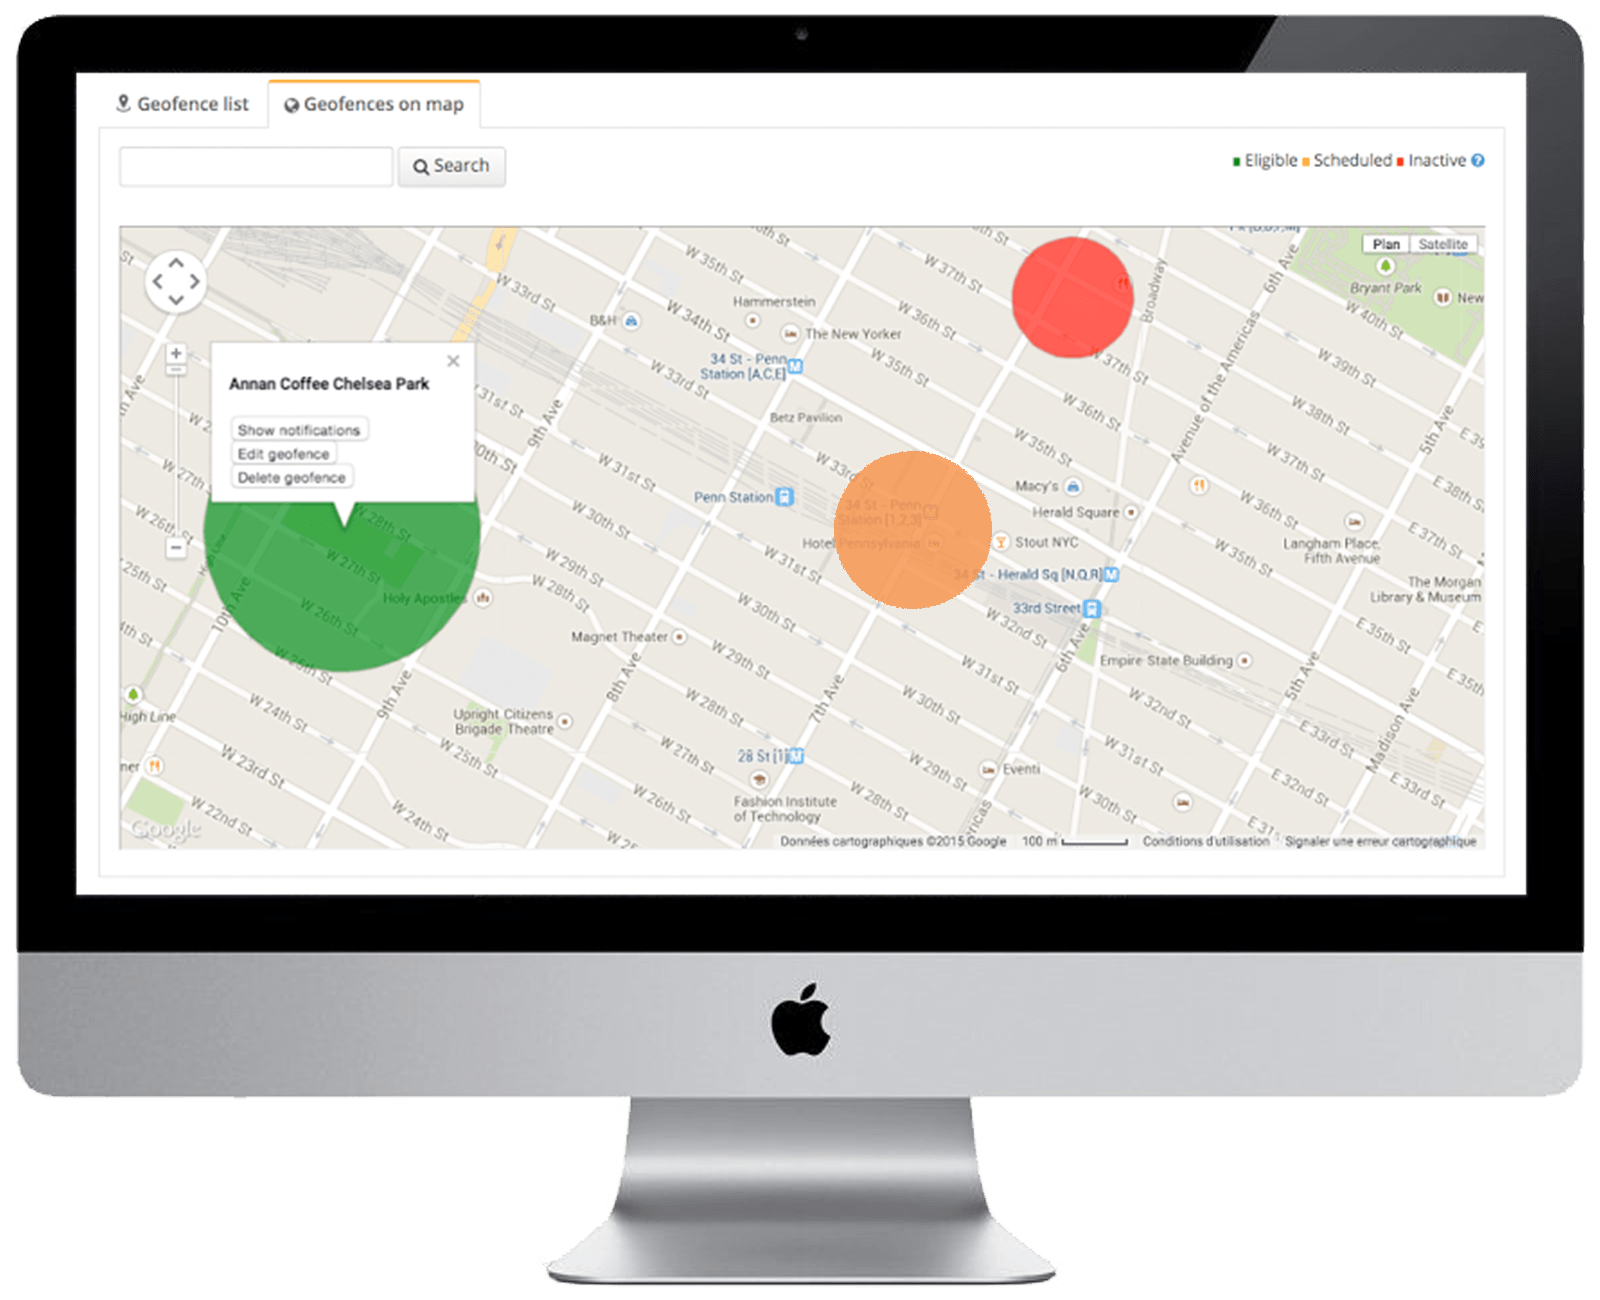 Geofence Overview